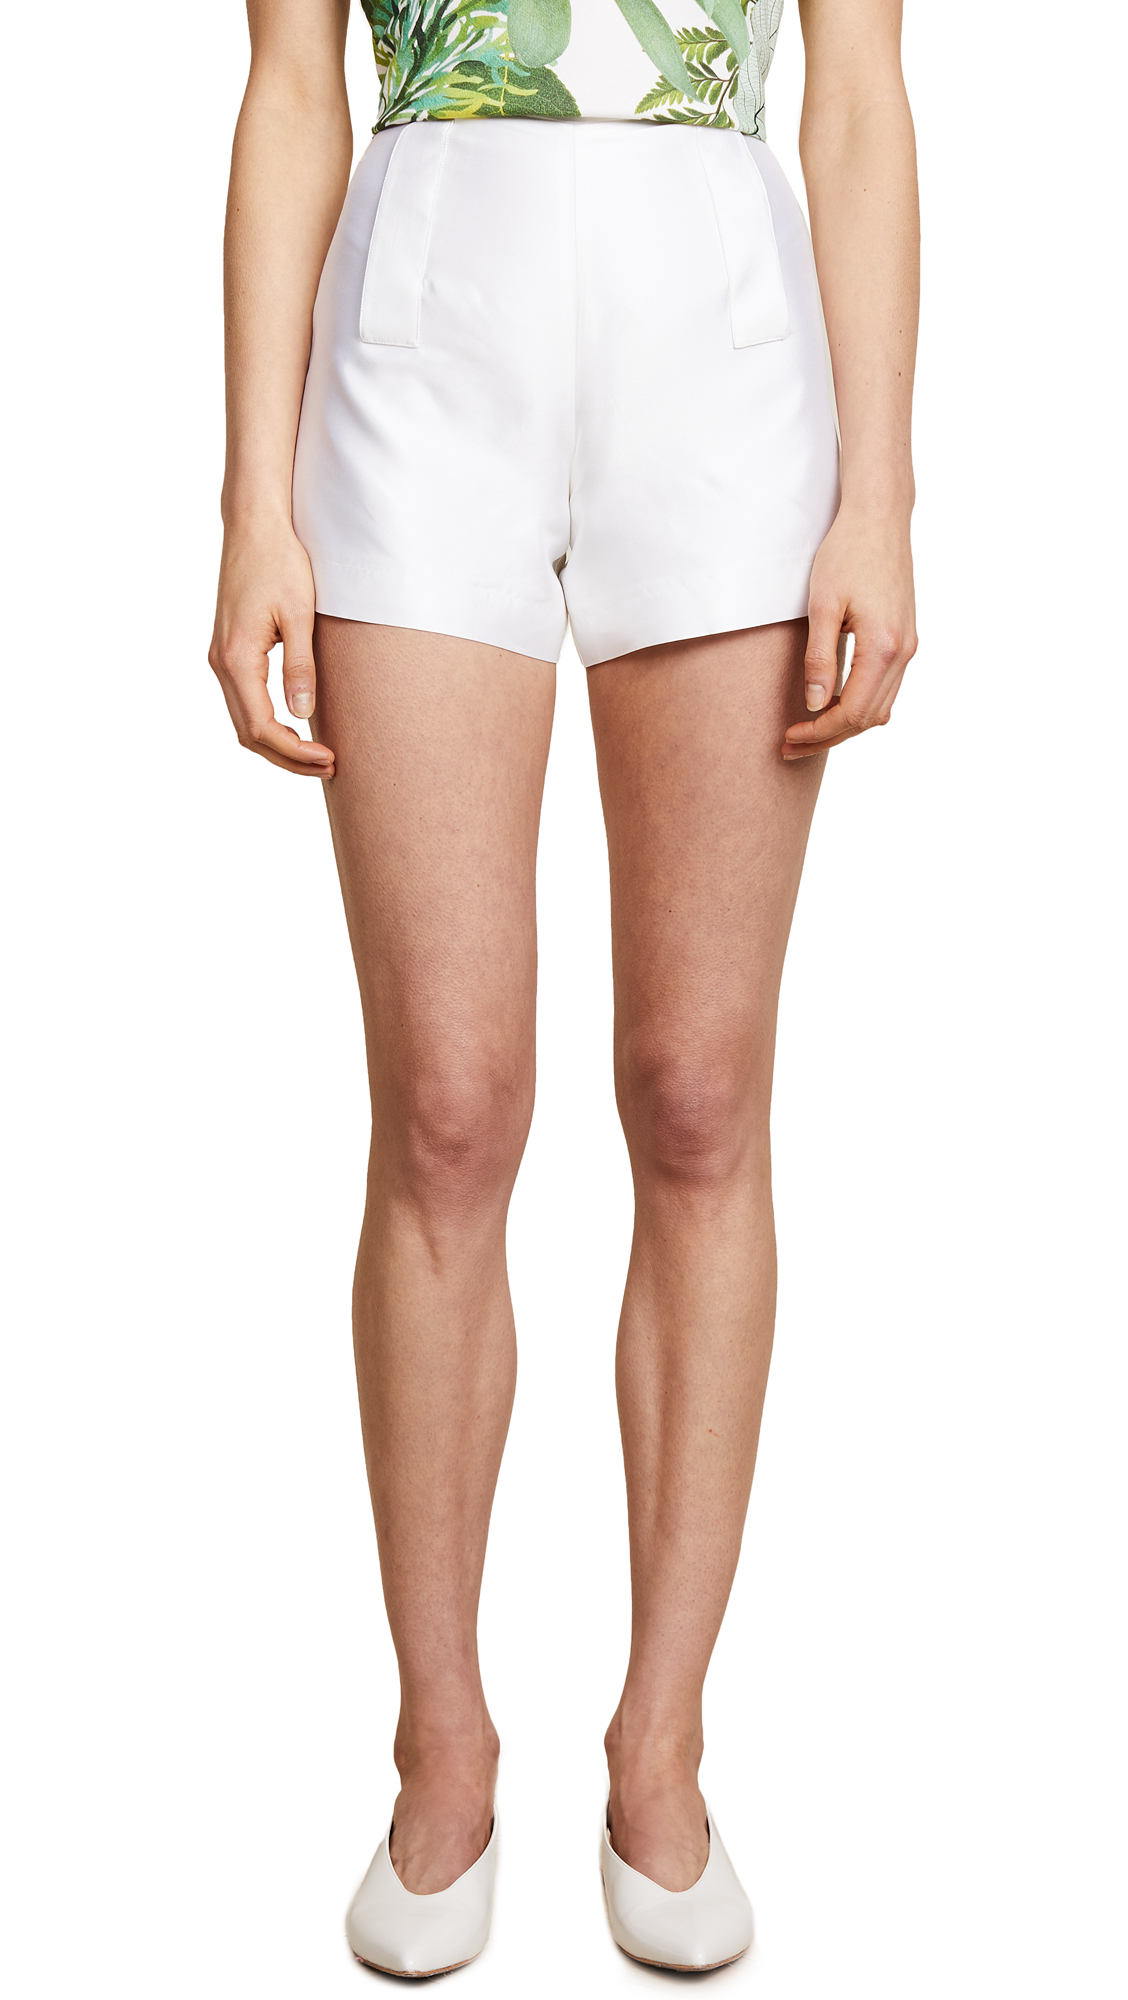 Ewa Herzog Silk Shorts